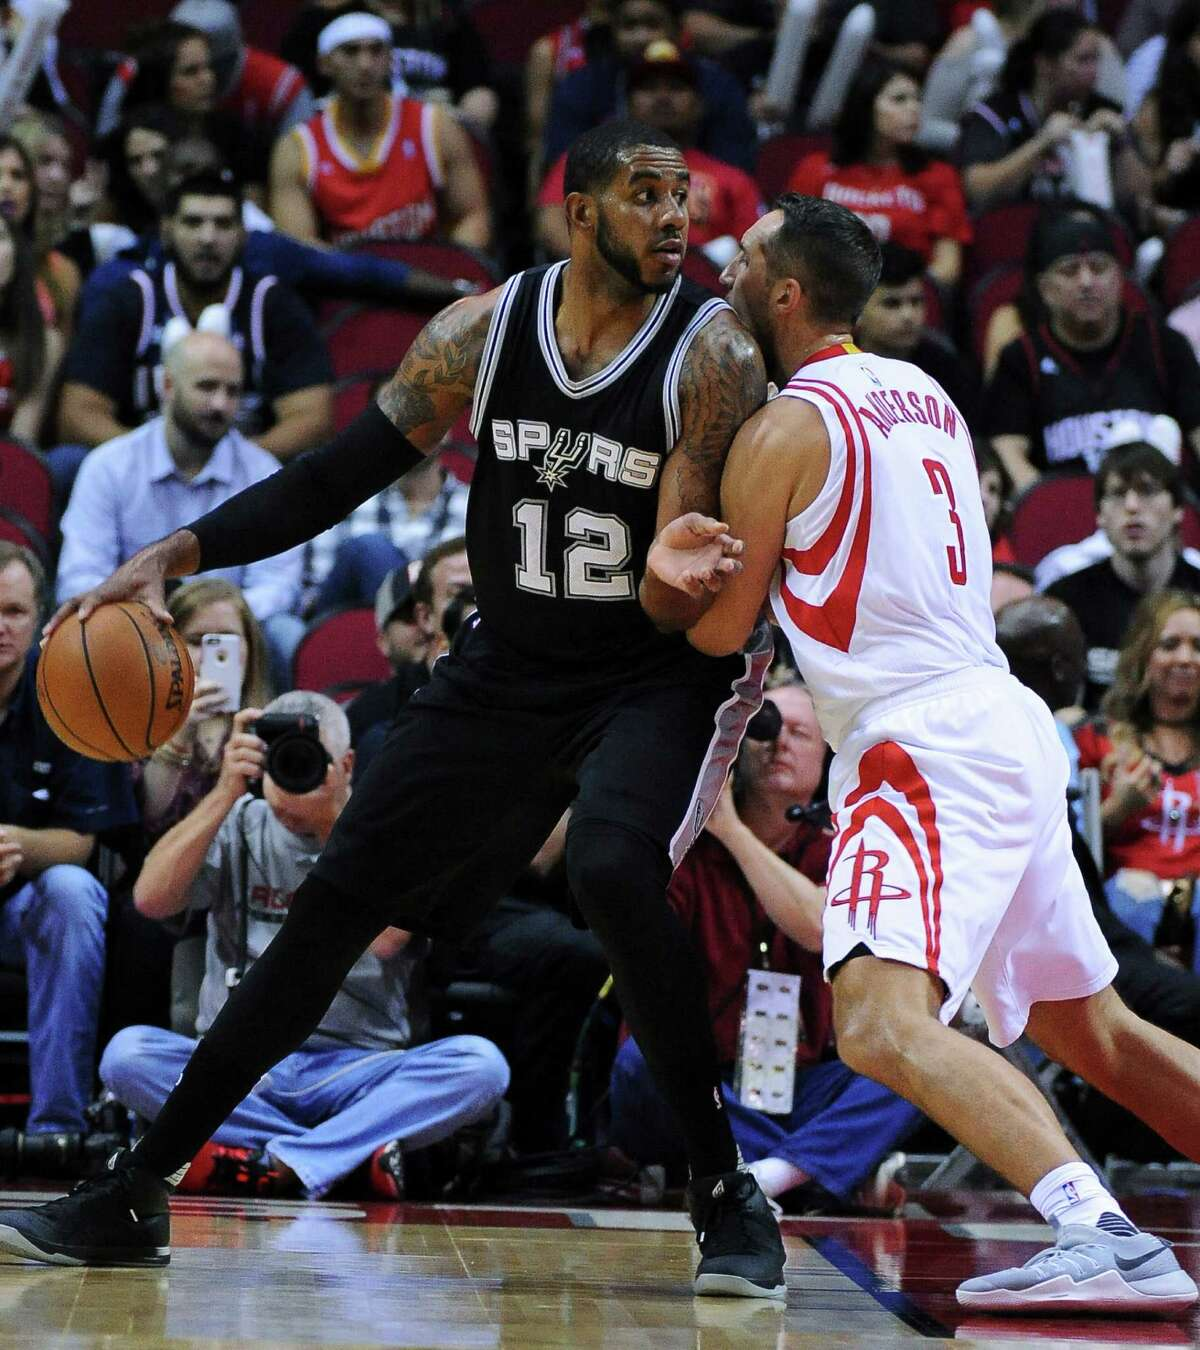 San Antonio Spurs forward LeMarcus Aldridge (12) is closely guarded by Houston Rockets forward Ryan Anderson (3) in the first half of an NBA basketball game on Saturday, Nov. 12, 2016, in Houston. (AP Photo/George Bridges)